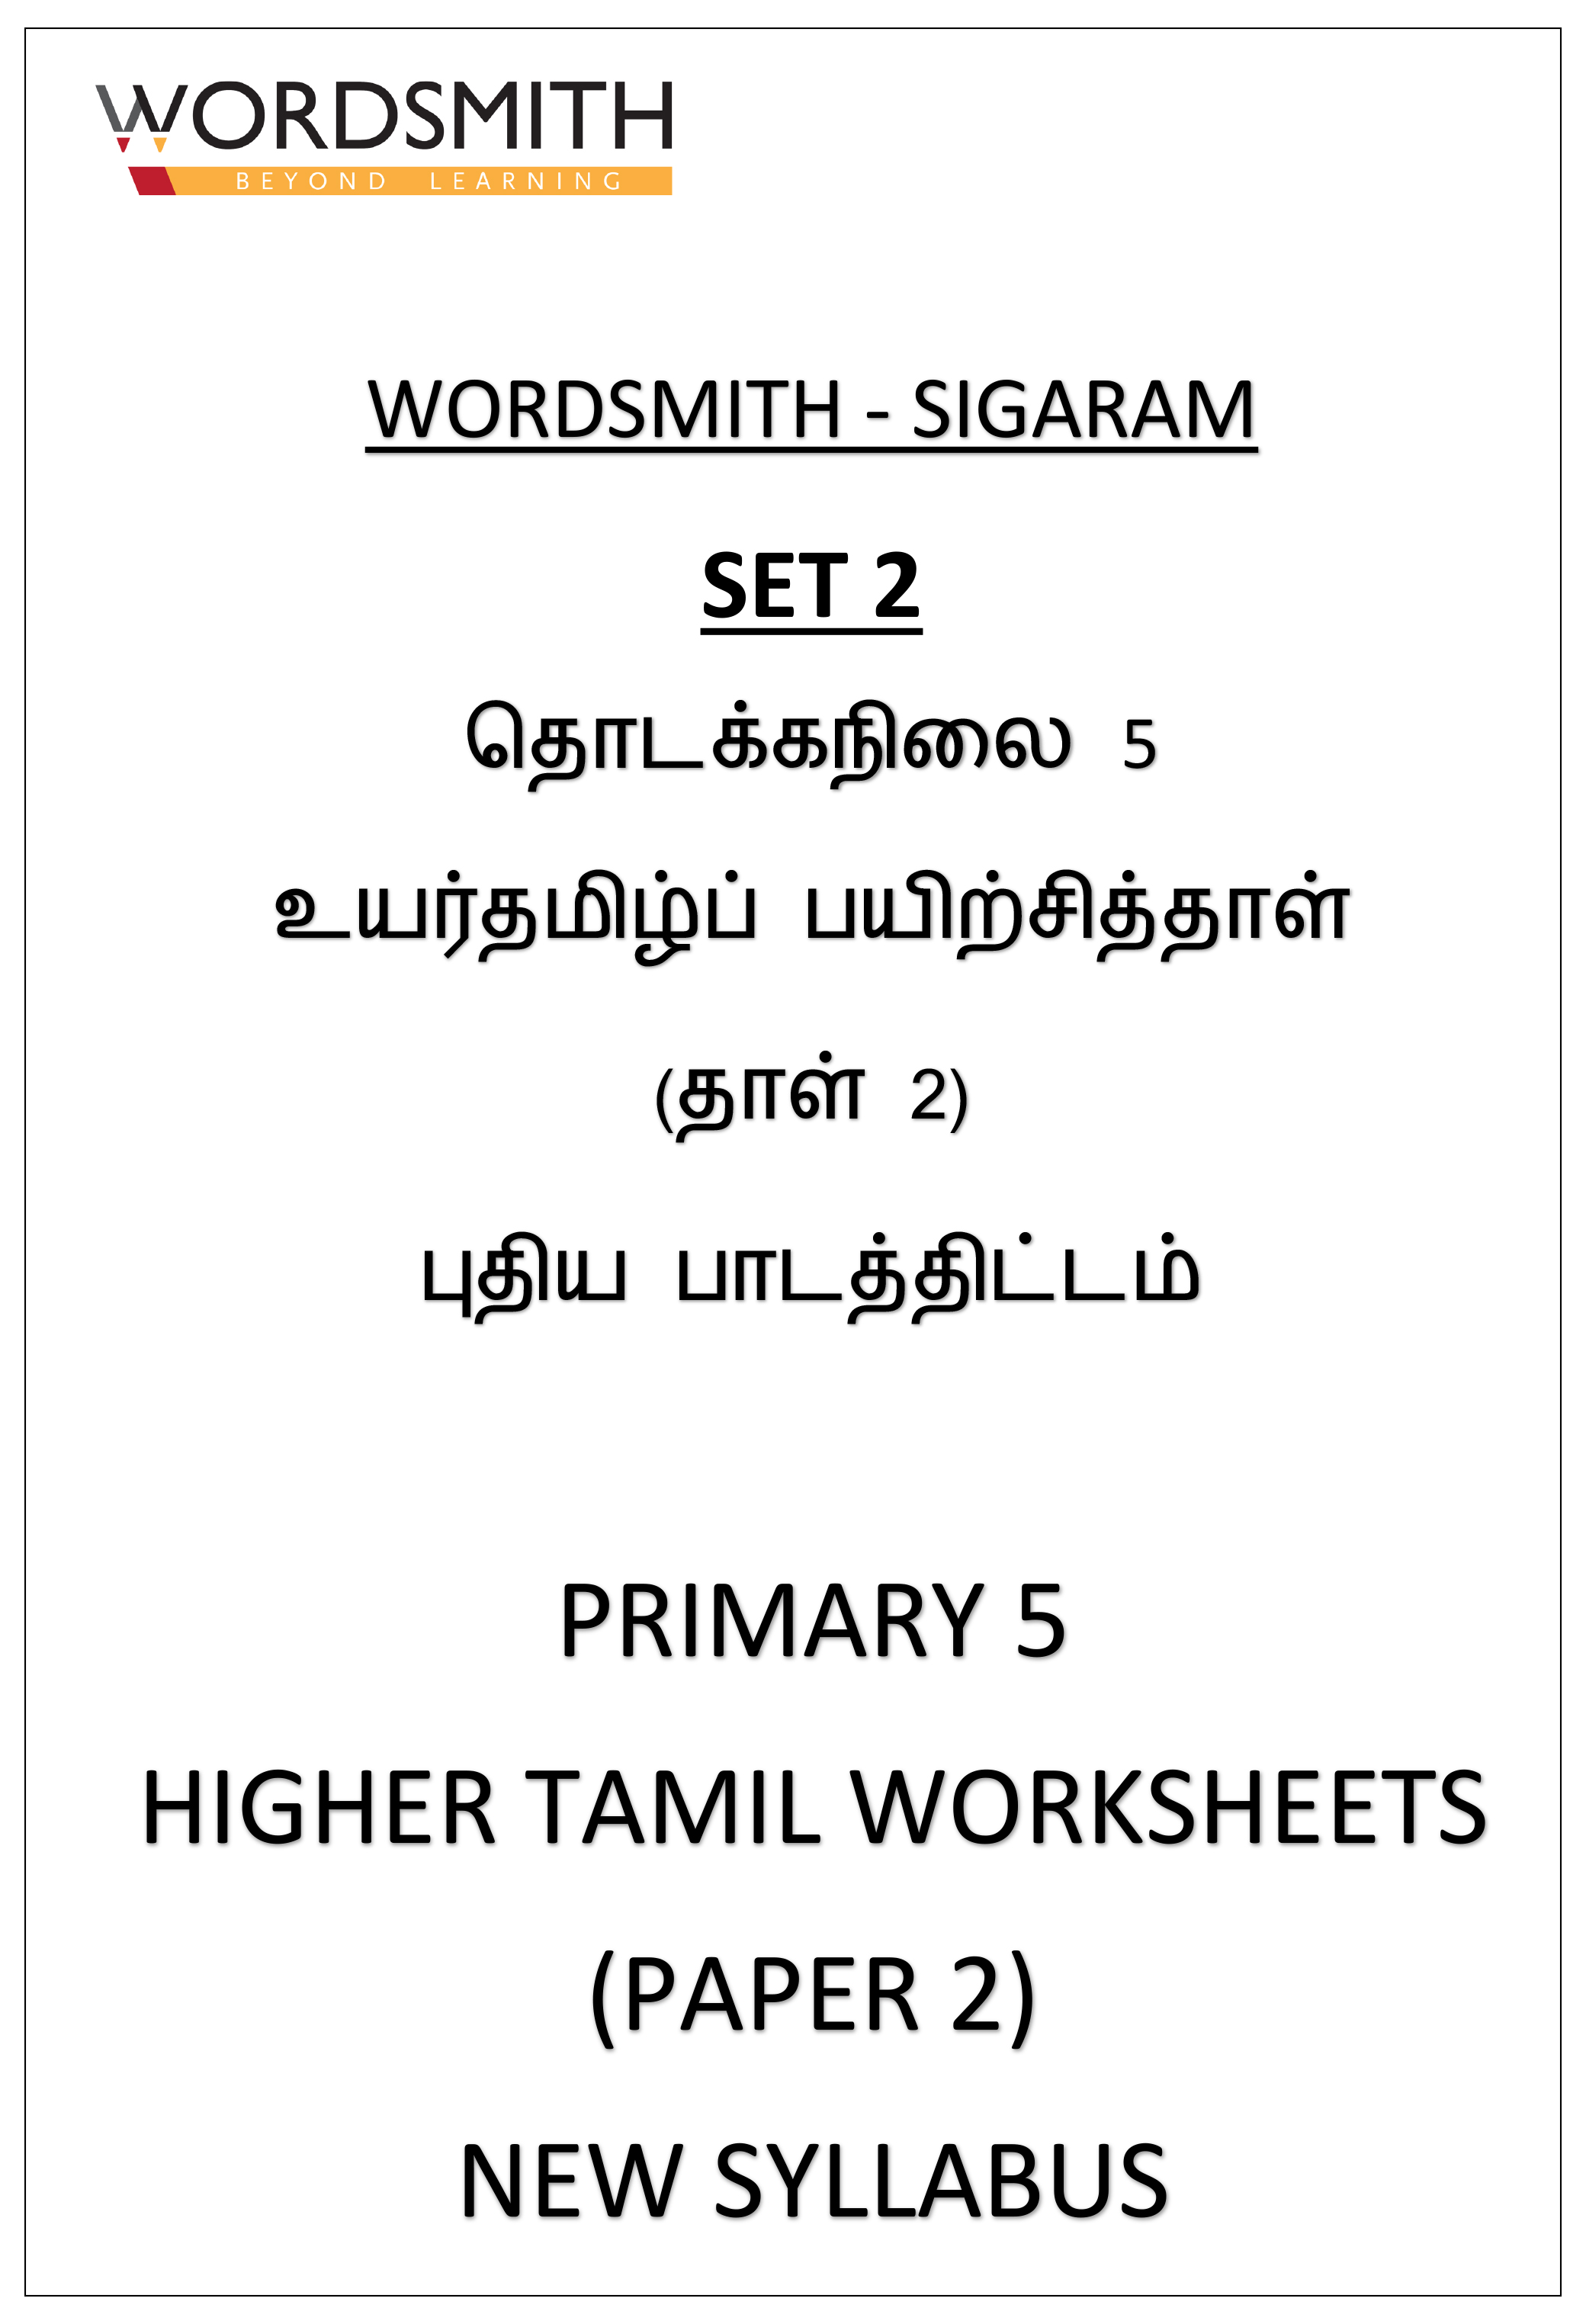 18 Spiral Binding Primary 5 Higher Tamil Worksheets Paper 2 12 Worksheets With Answer